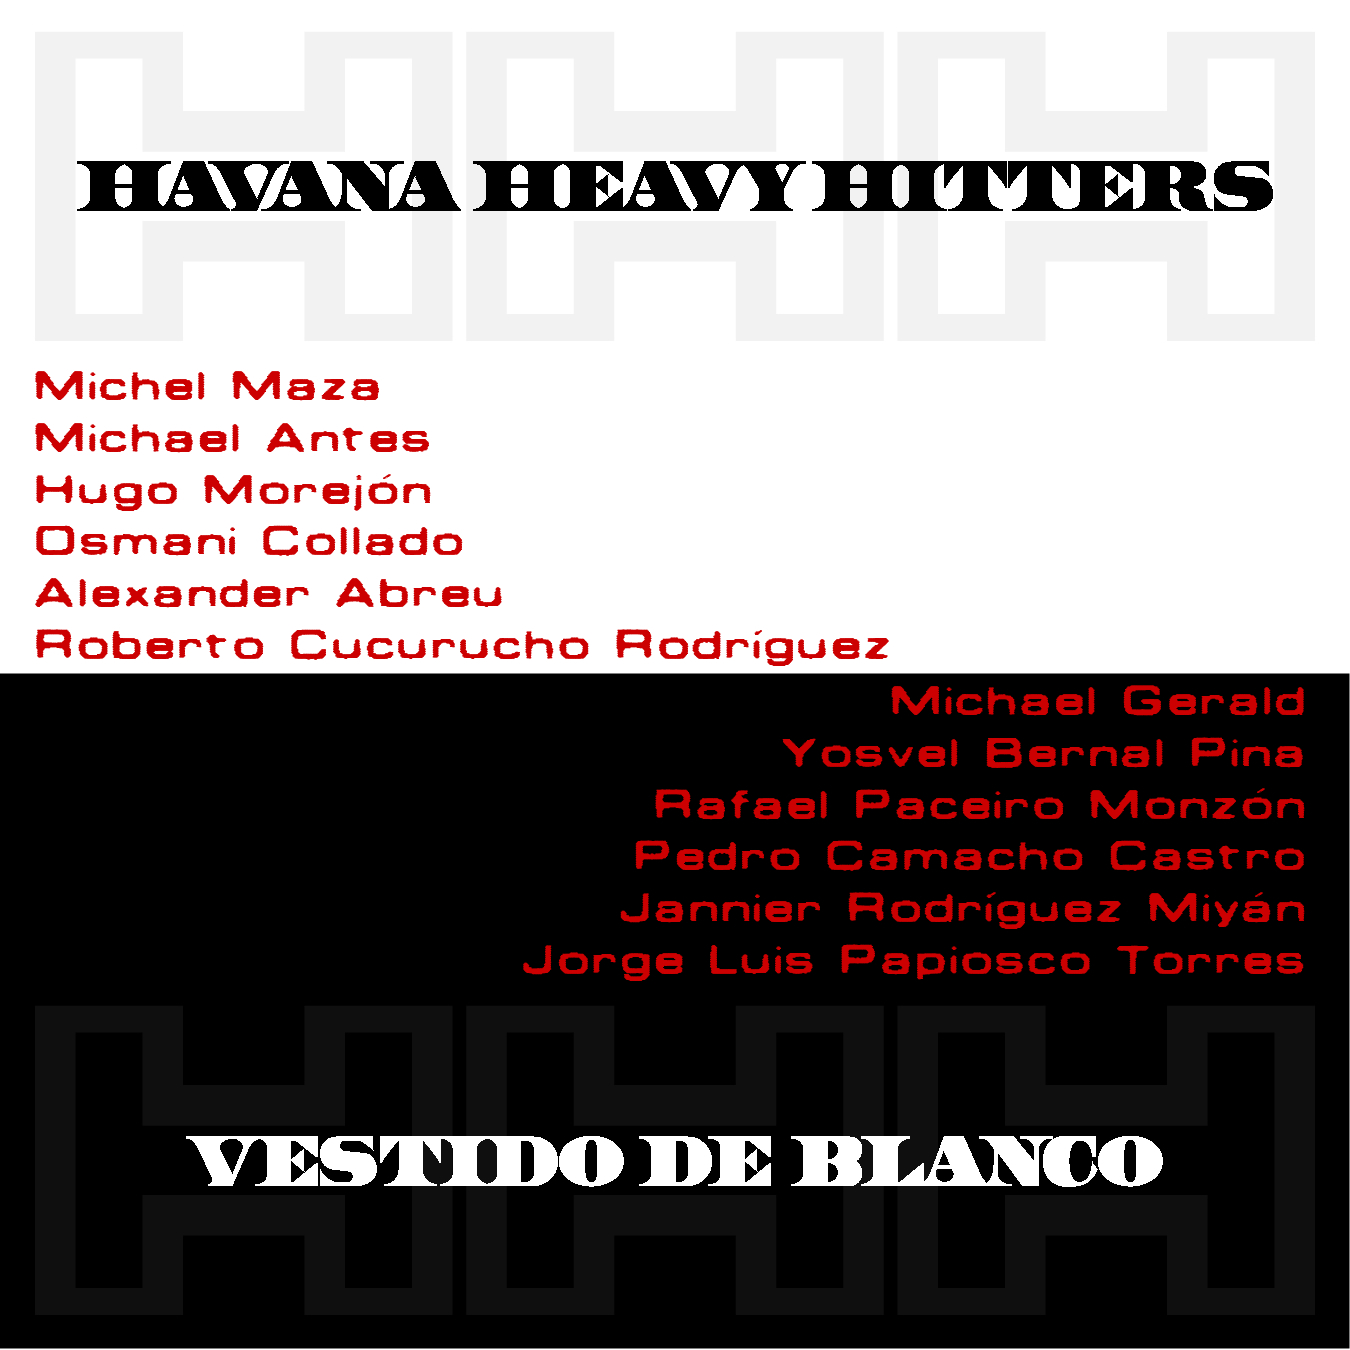 Vestido De Blanco by Havana Heavy Hitters - Cuban music - Best Tropical Latin - 54th Grammy Awards